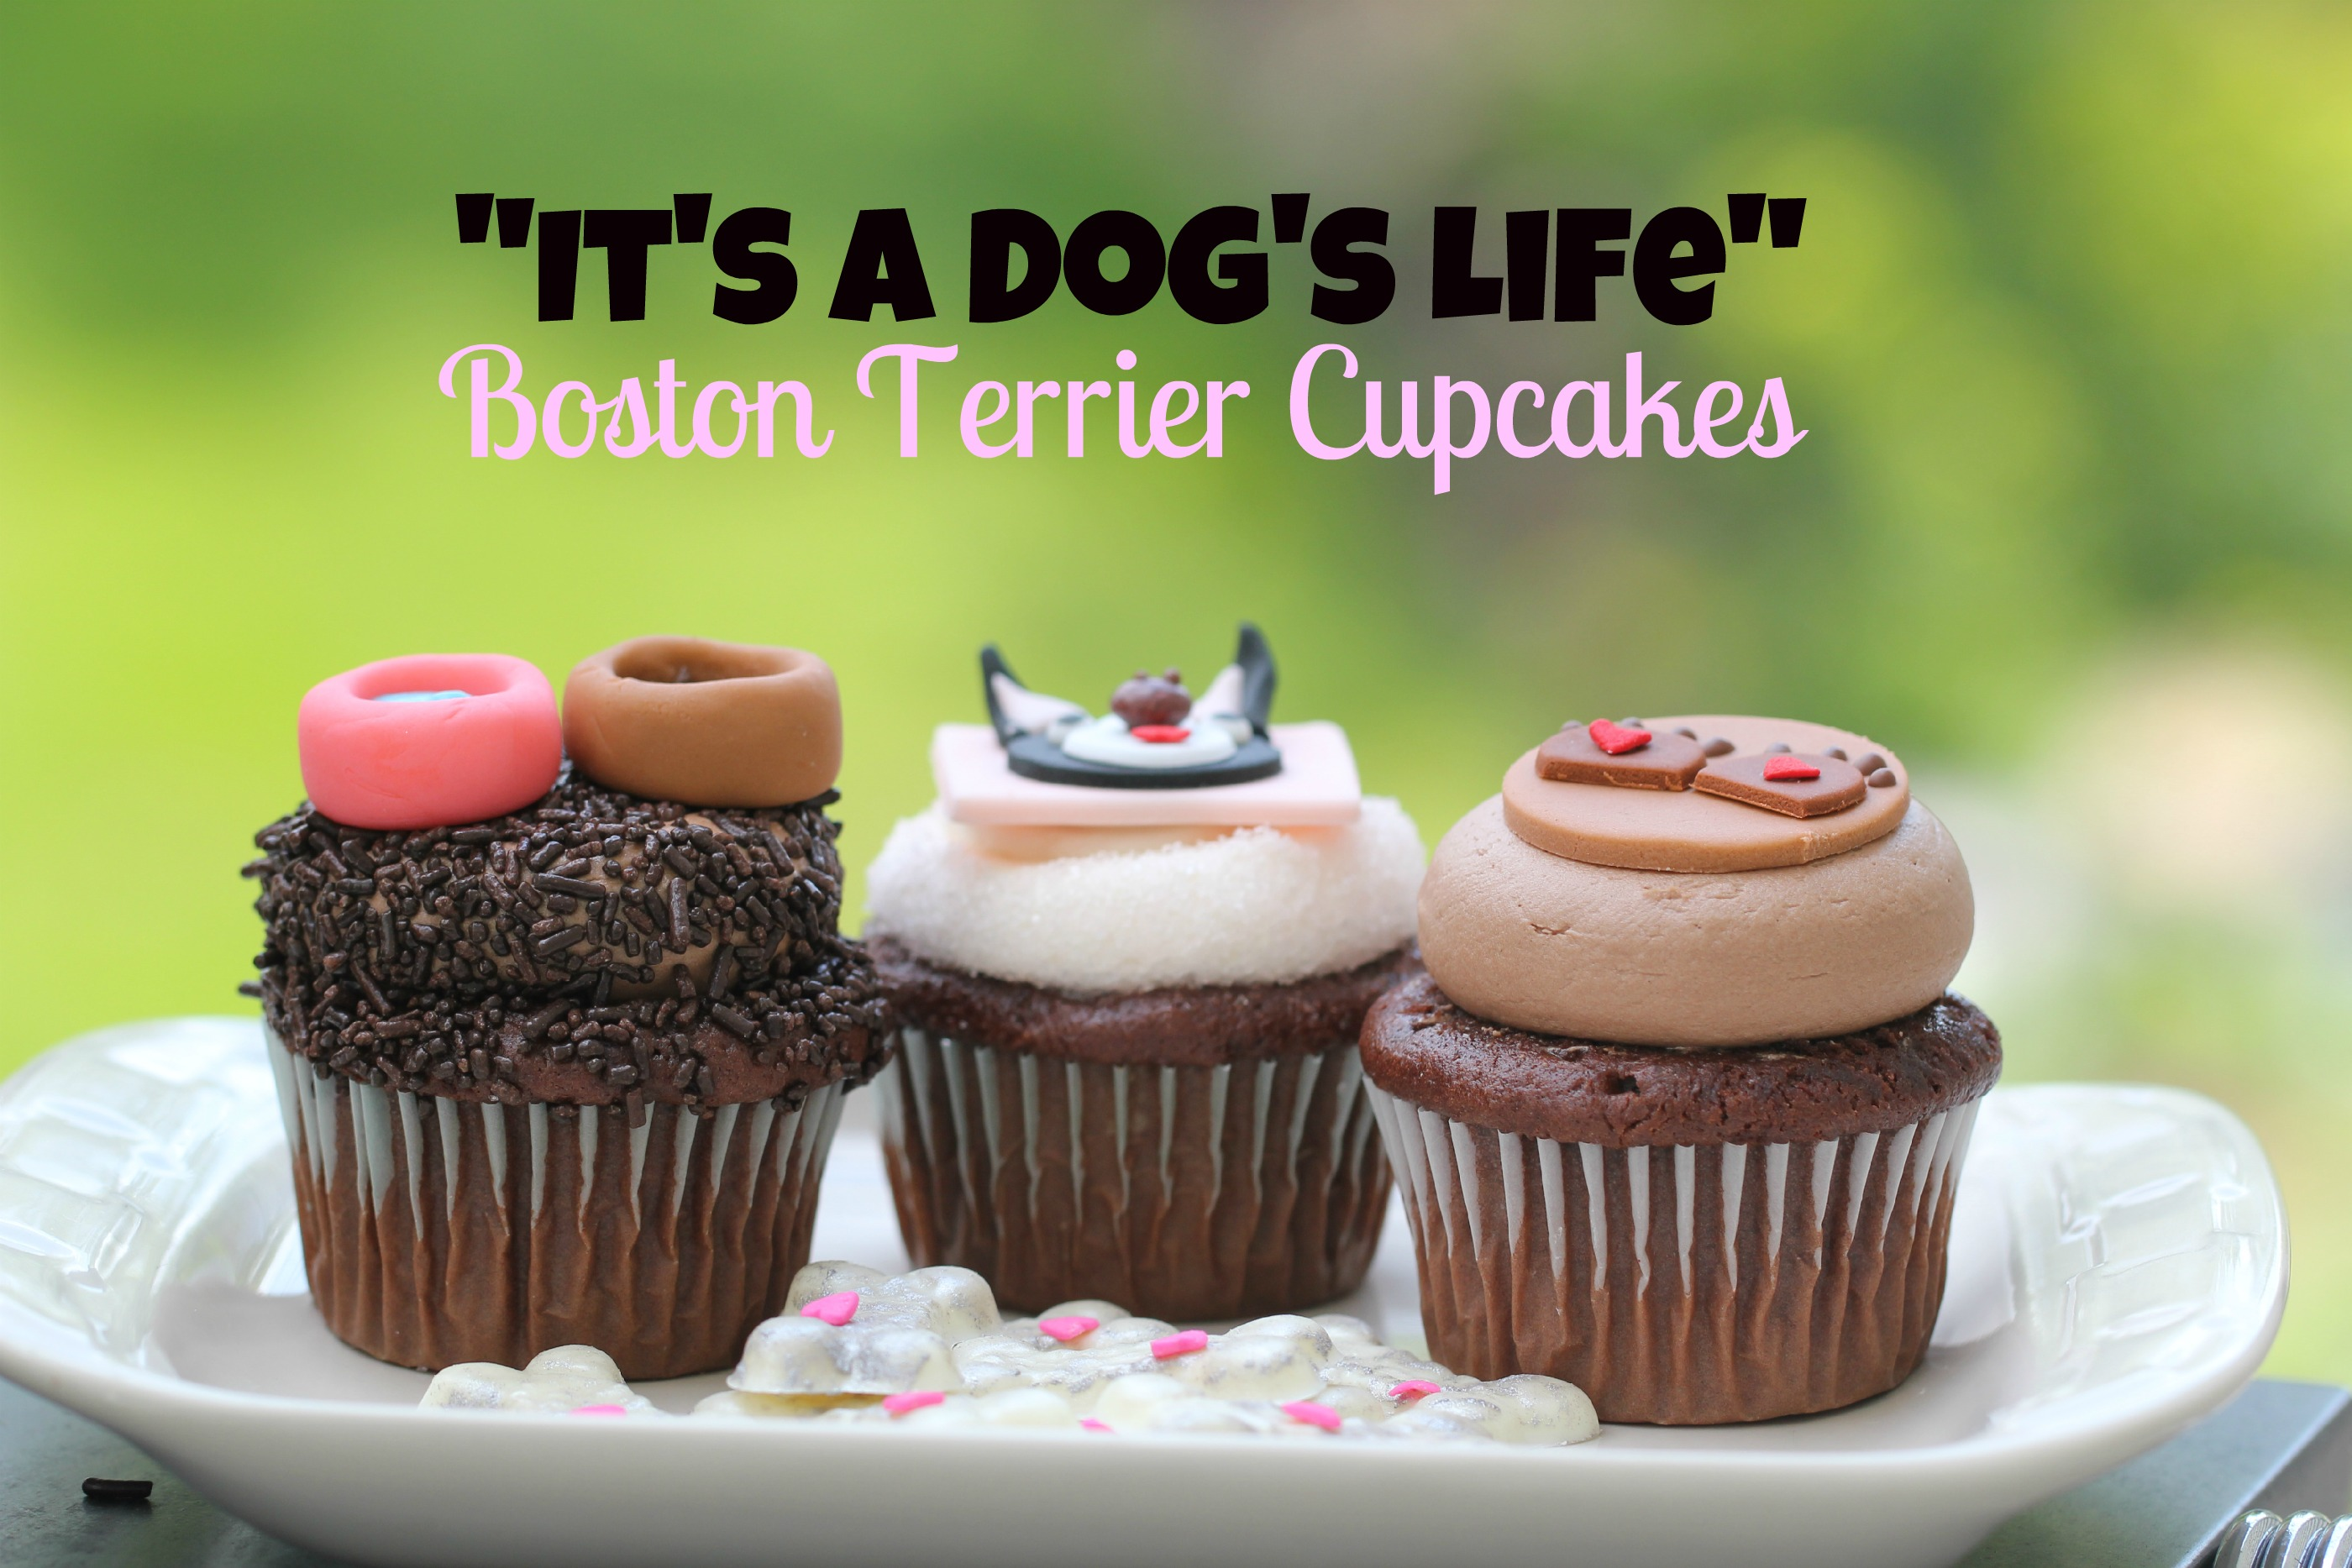 BostonTerrierCupcakes